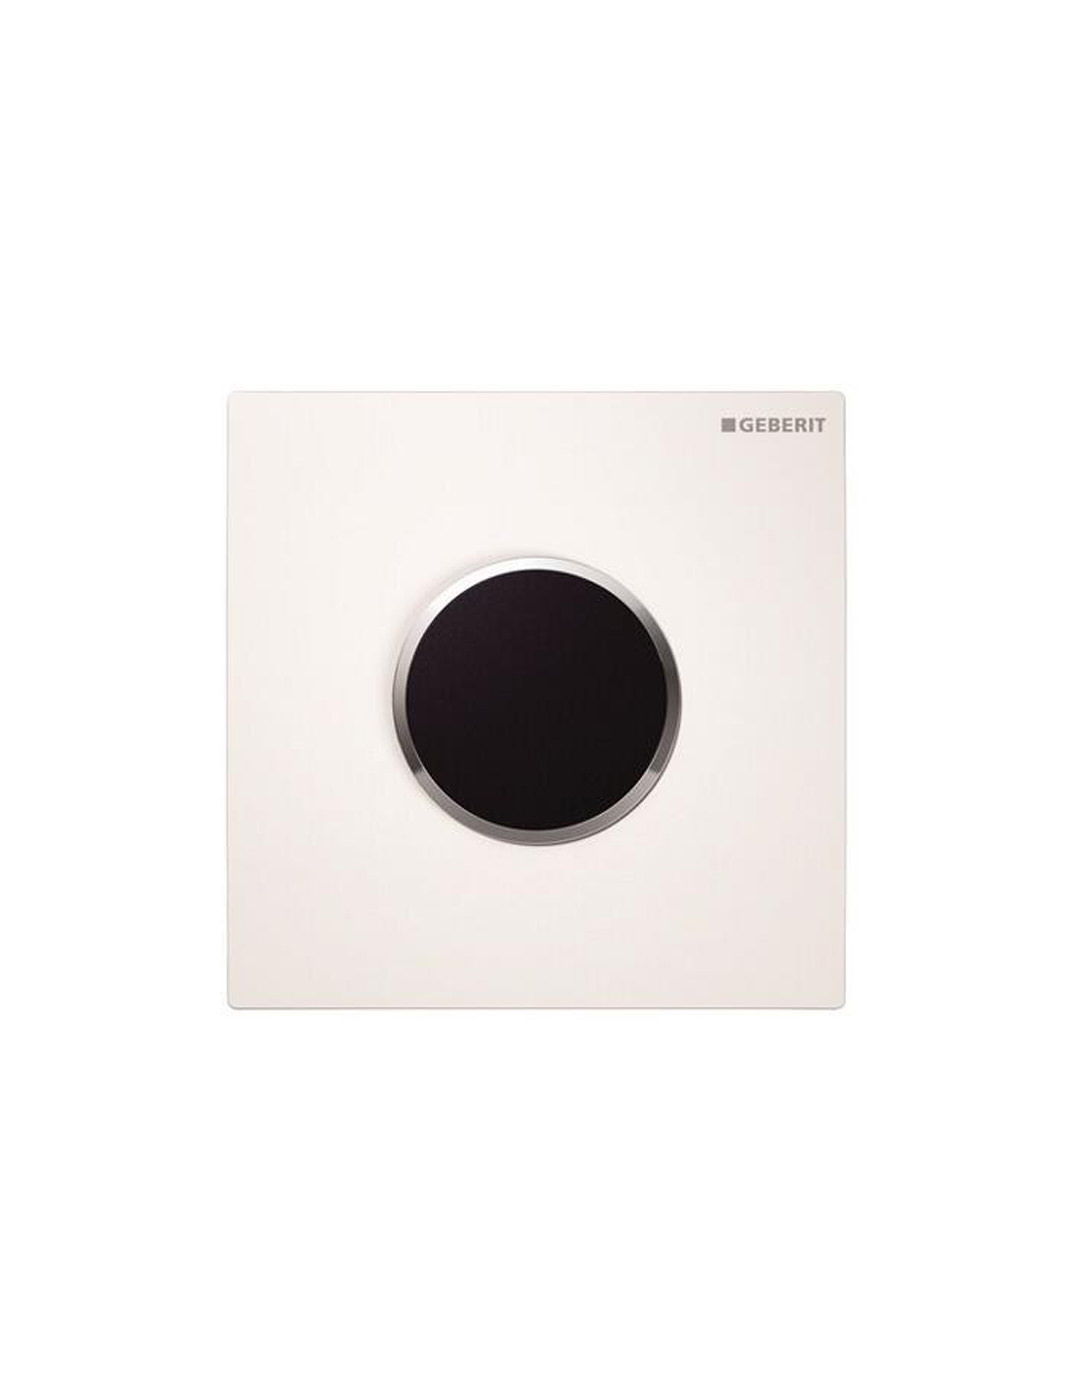 geberit sigma10 hytouch infra red urinal control main powered. Black Bedroom Furniture Sets. Home Design Ideas